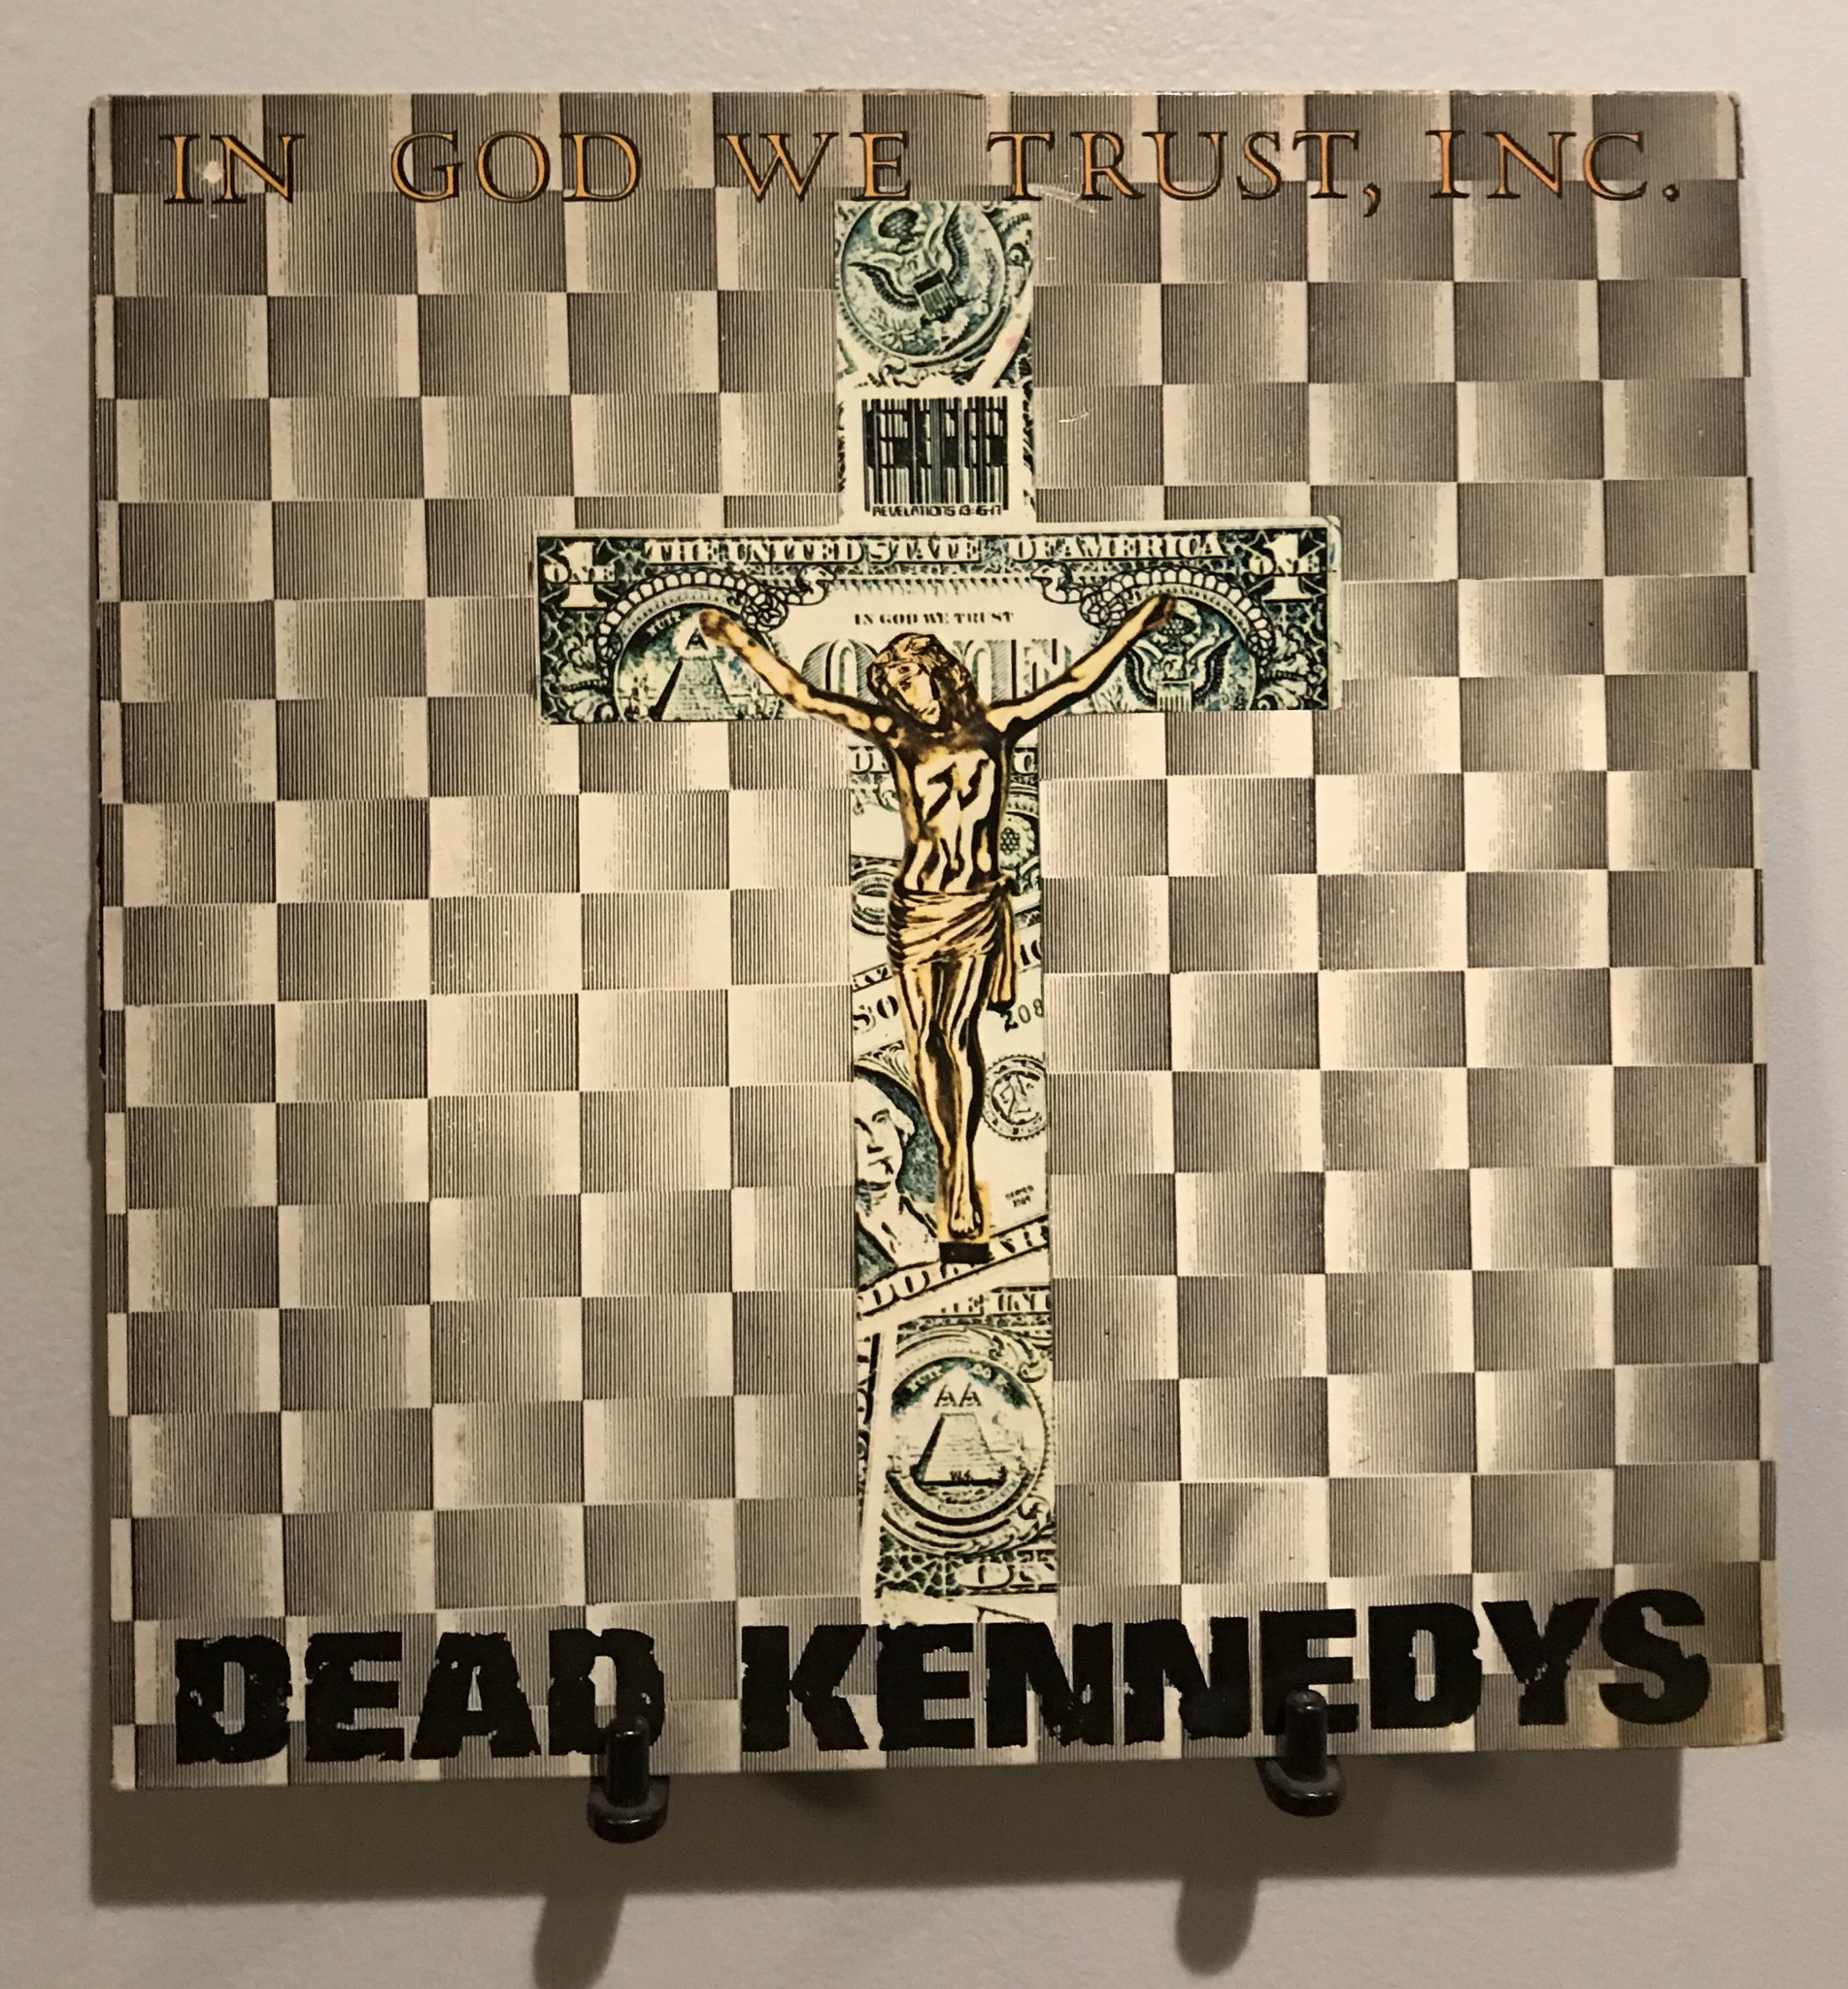 """*used* Dead Kennedys - In God We Trust, Inc 12"""""""